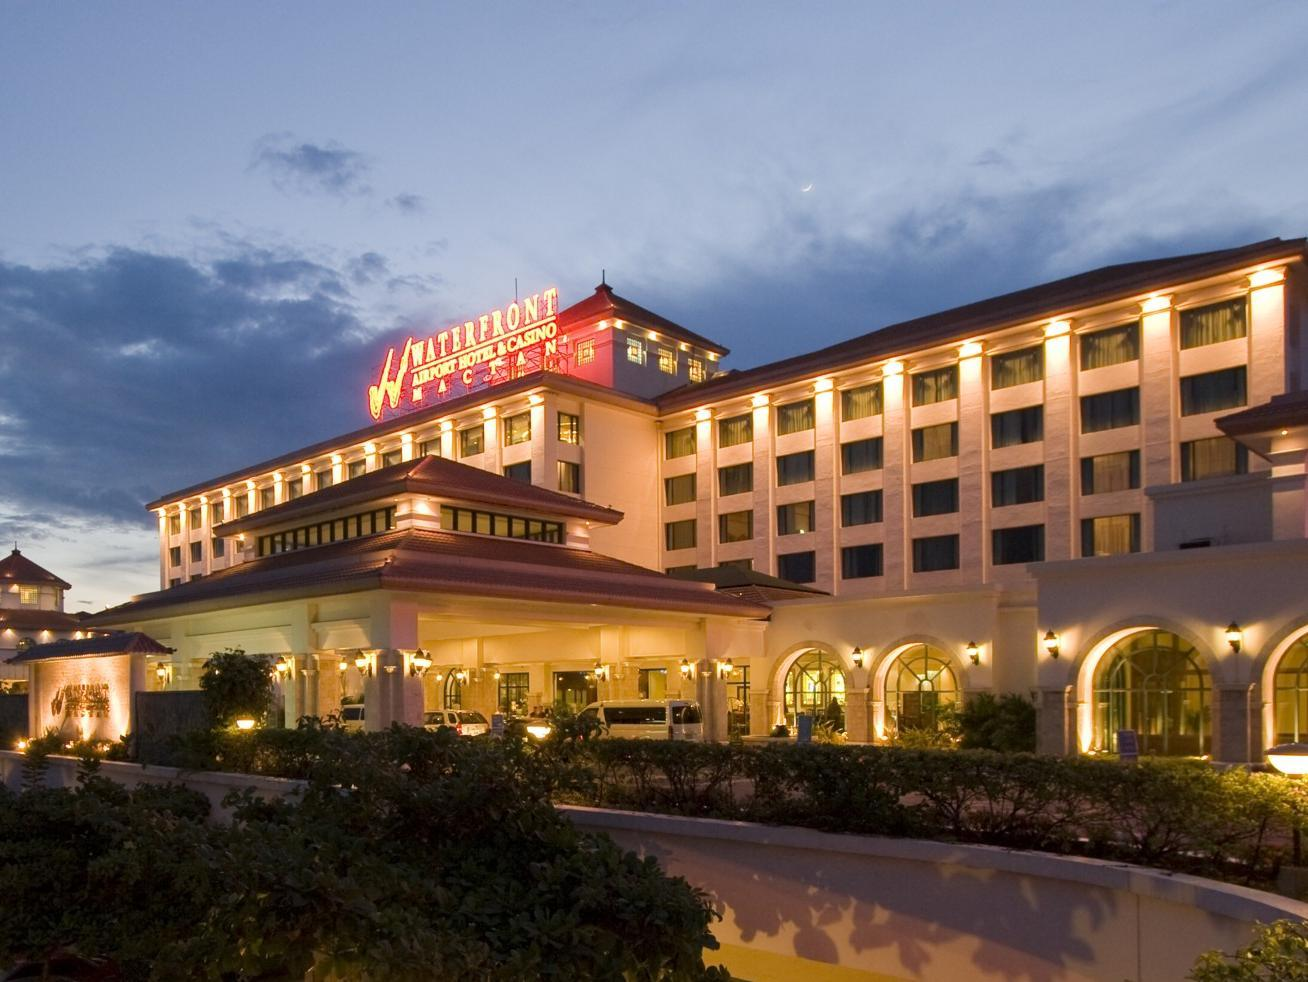 Waterfront Airport Hotel and Casino Cebu - Tampilan Luar Hotel